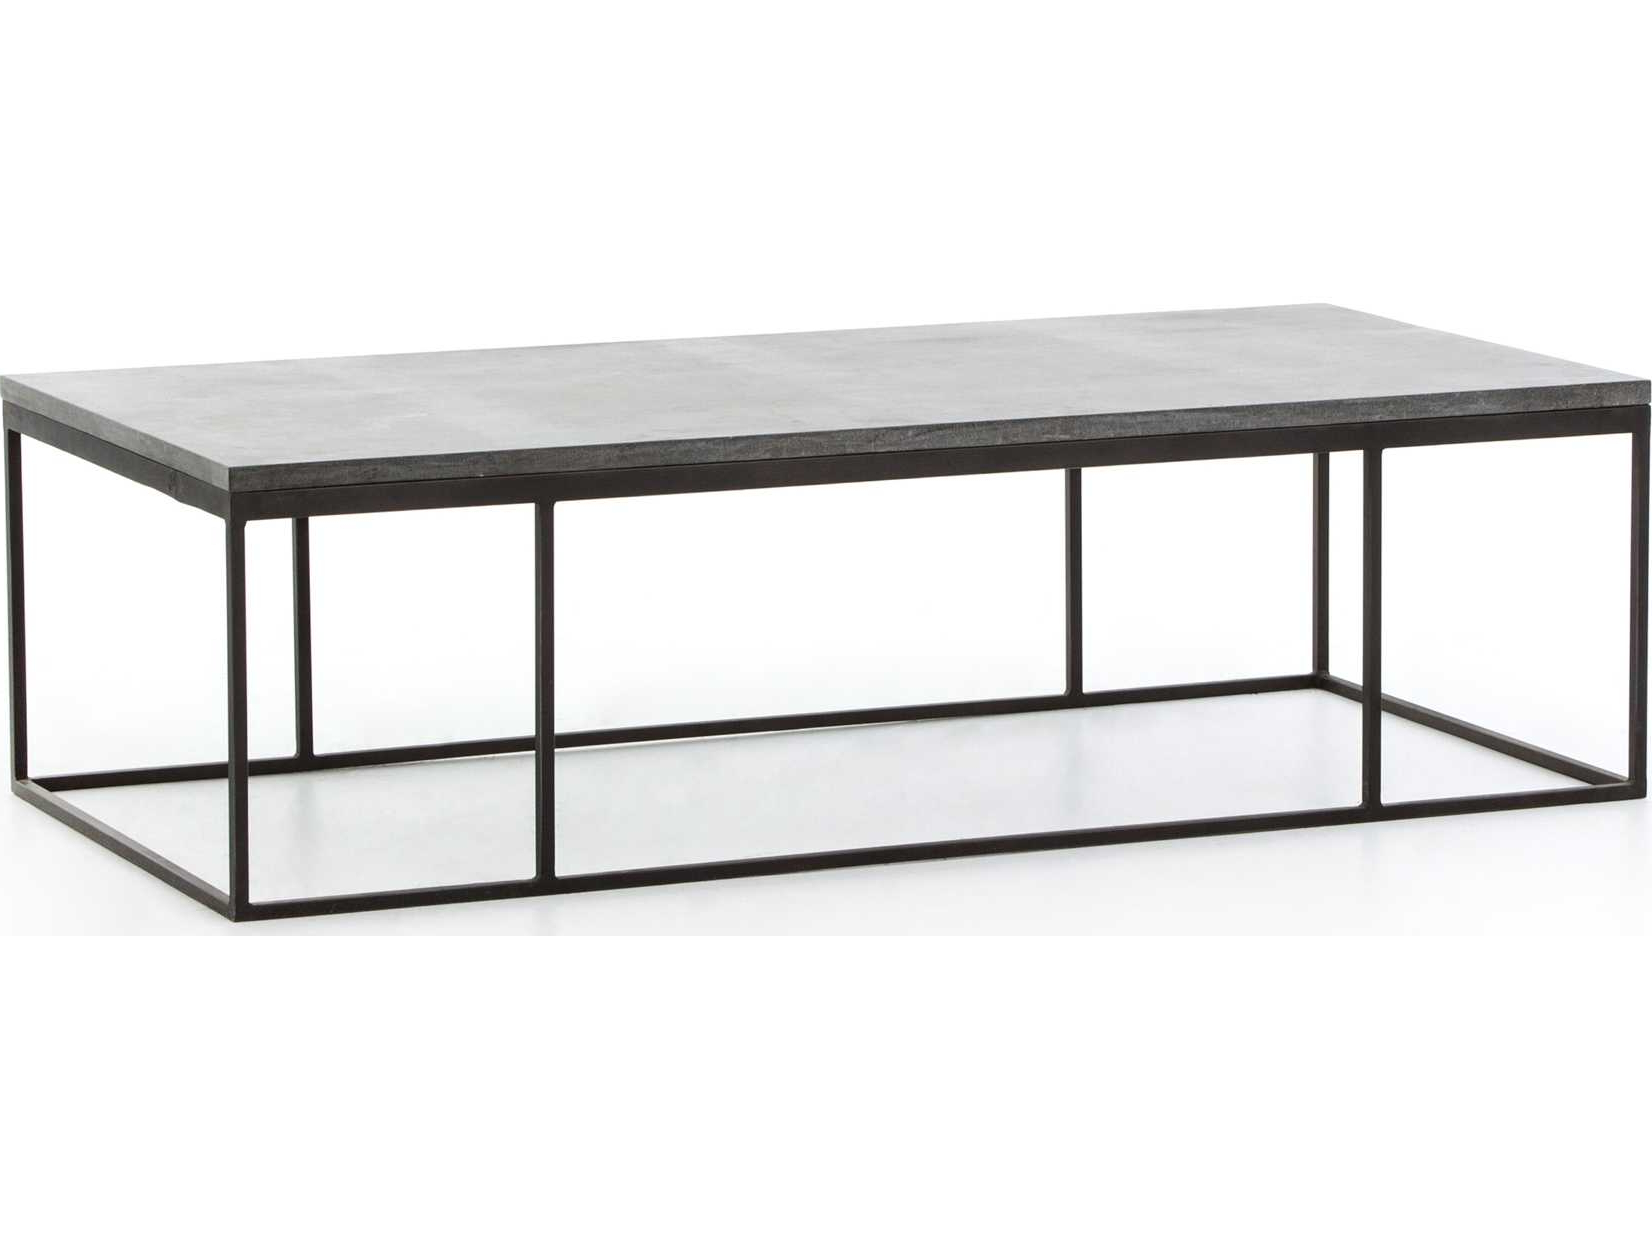 Bluestone Rustic Black Coffee Tables Within Favorite Four Hands Hughes Bluestone 60 X 28 Rectangular Harlow Small Coffee (View 7 of 20)